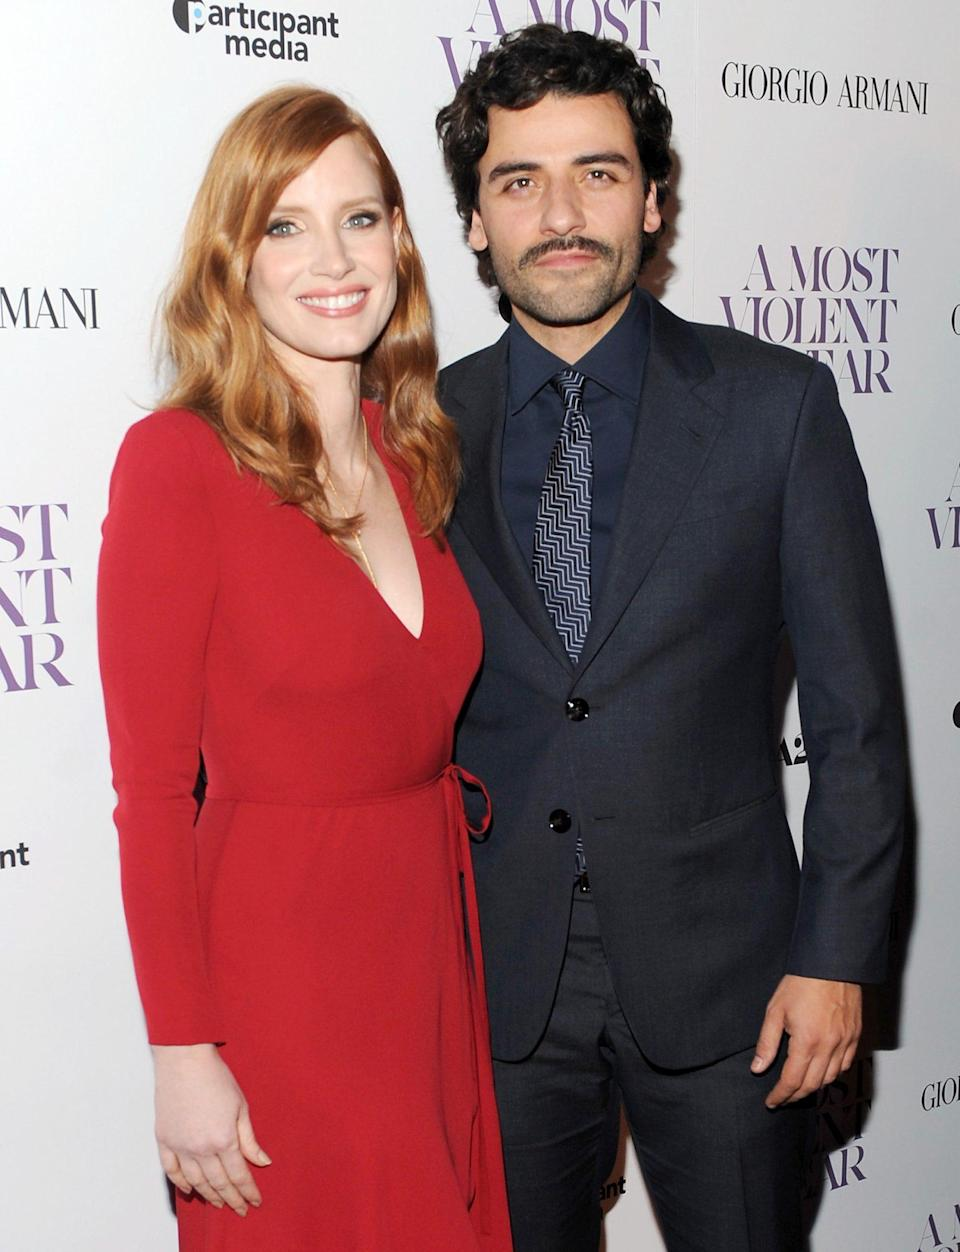 <p>In 2014 the two starred in <em>A Most Violent Year</em>, which earned Chastain a Golden Globe nomination for best supporting actress. </p>